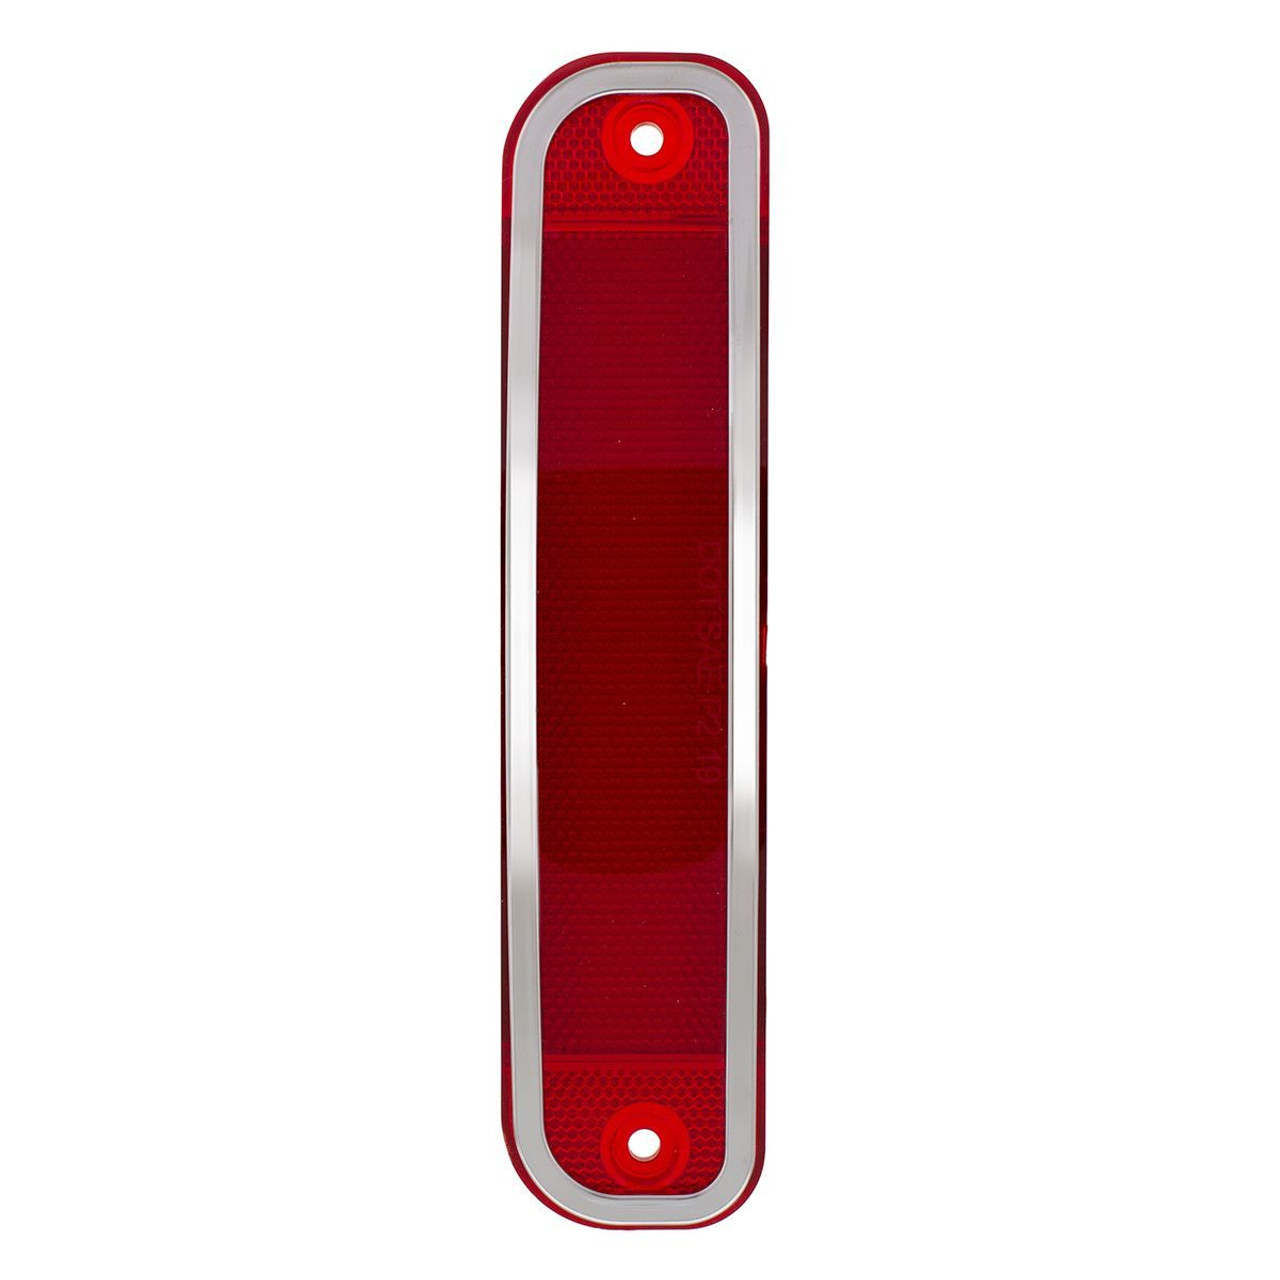 15 LED Red Lens Side Marker Light W/ Stainless Steel, 1973-80 Chevrolet Truck